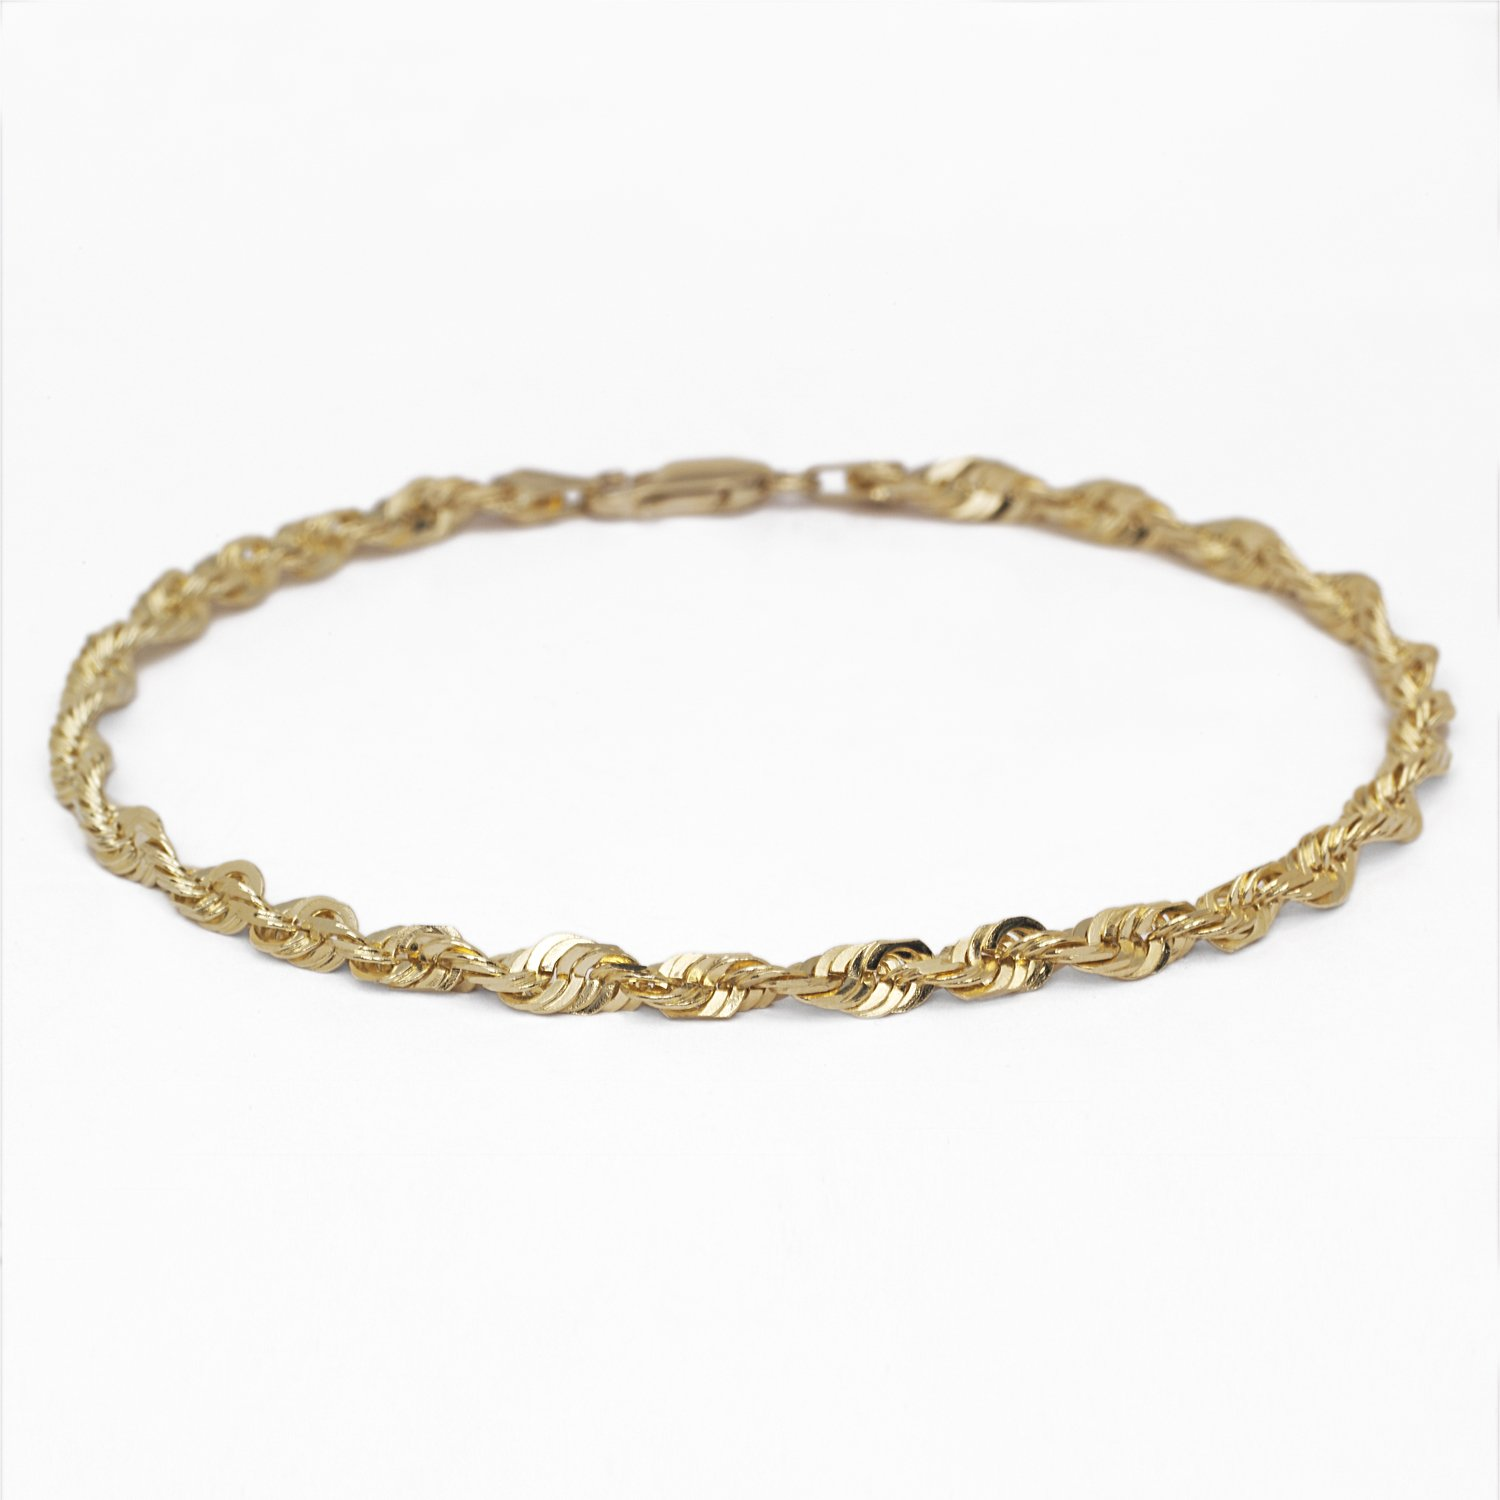 10 Inch 10k Yellow Gold Solid Extra Light Diamond Cut Rope Chain Bracelet and Anklet, 5mm